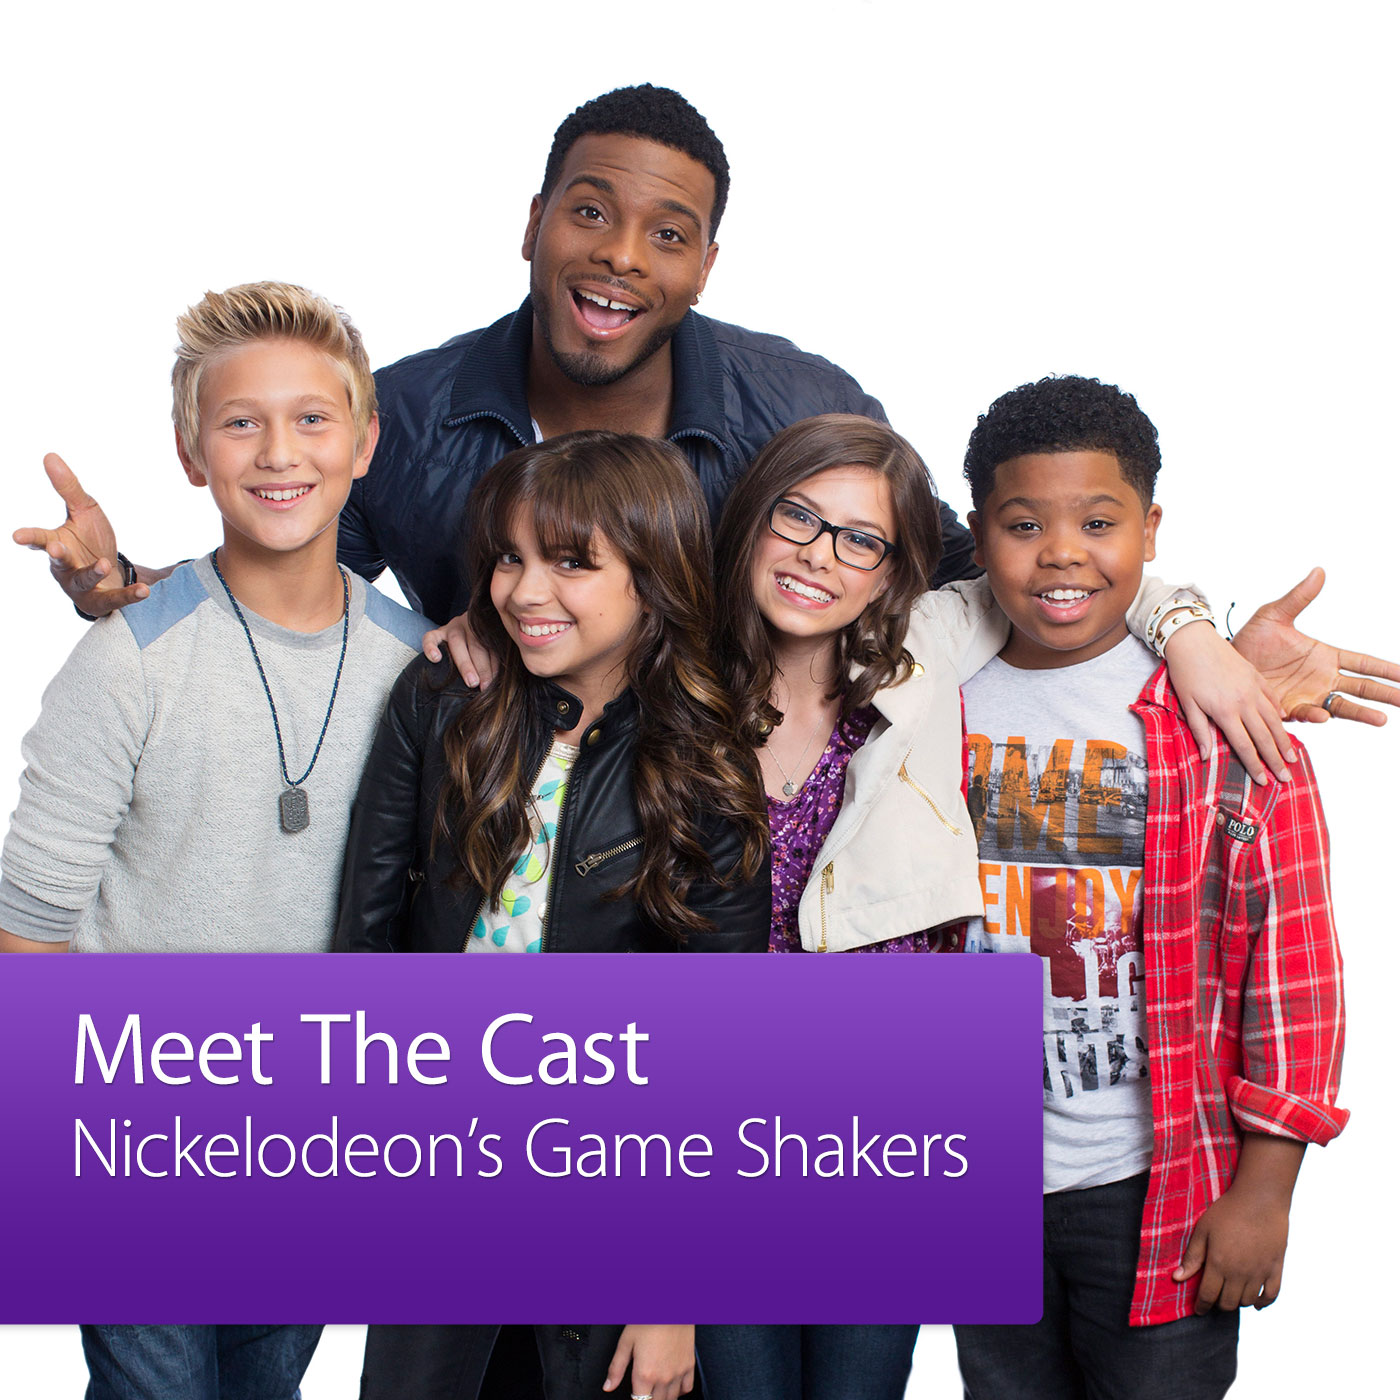 Nickelodeon's Game Shakers: Meet the Cast